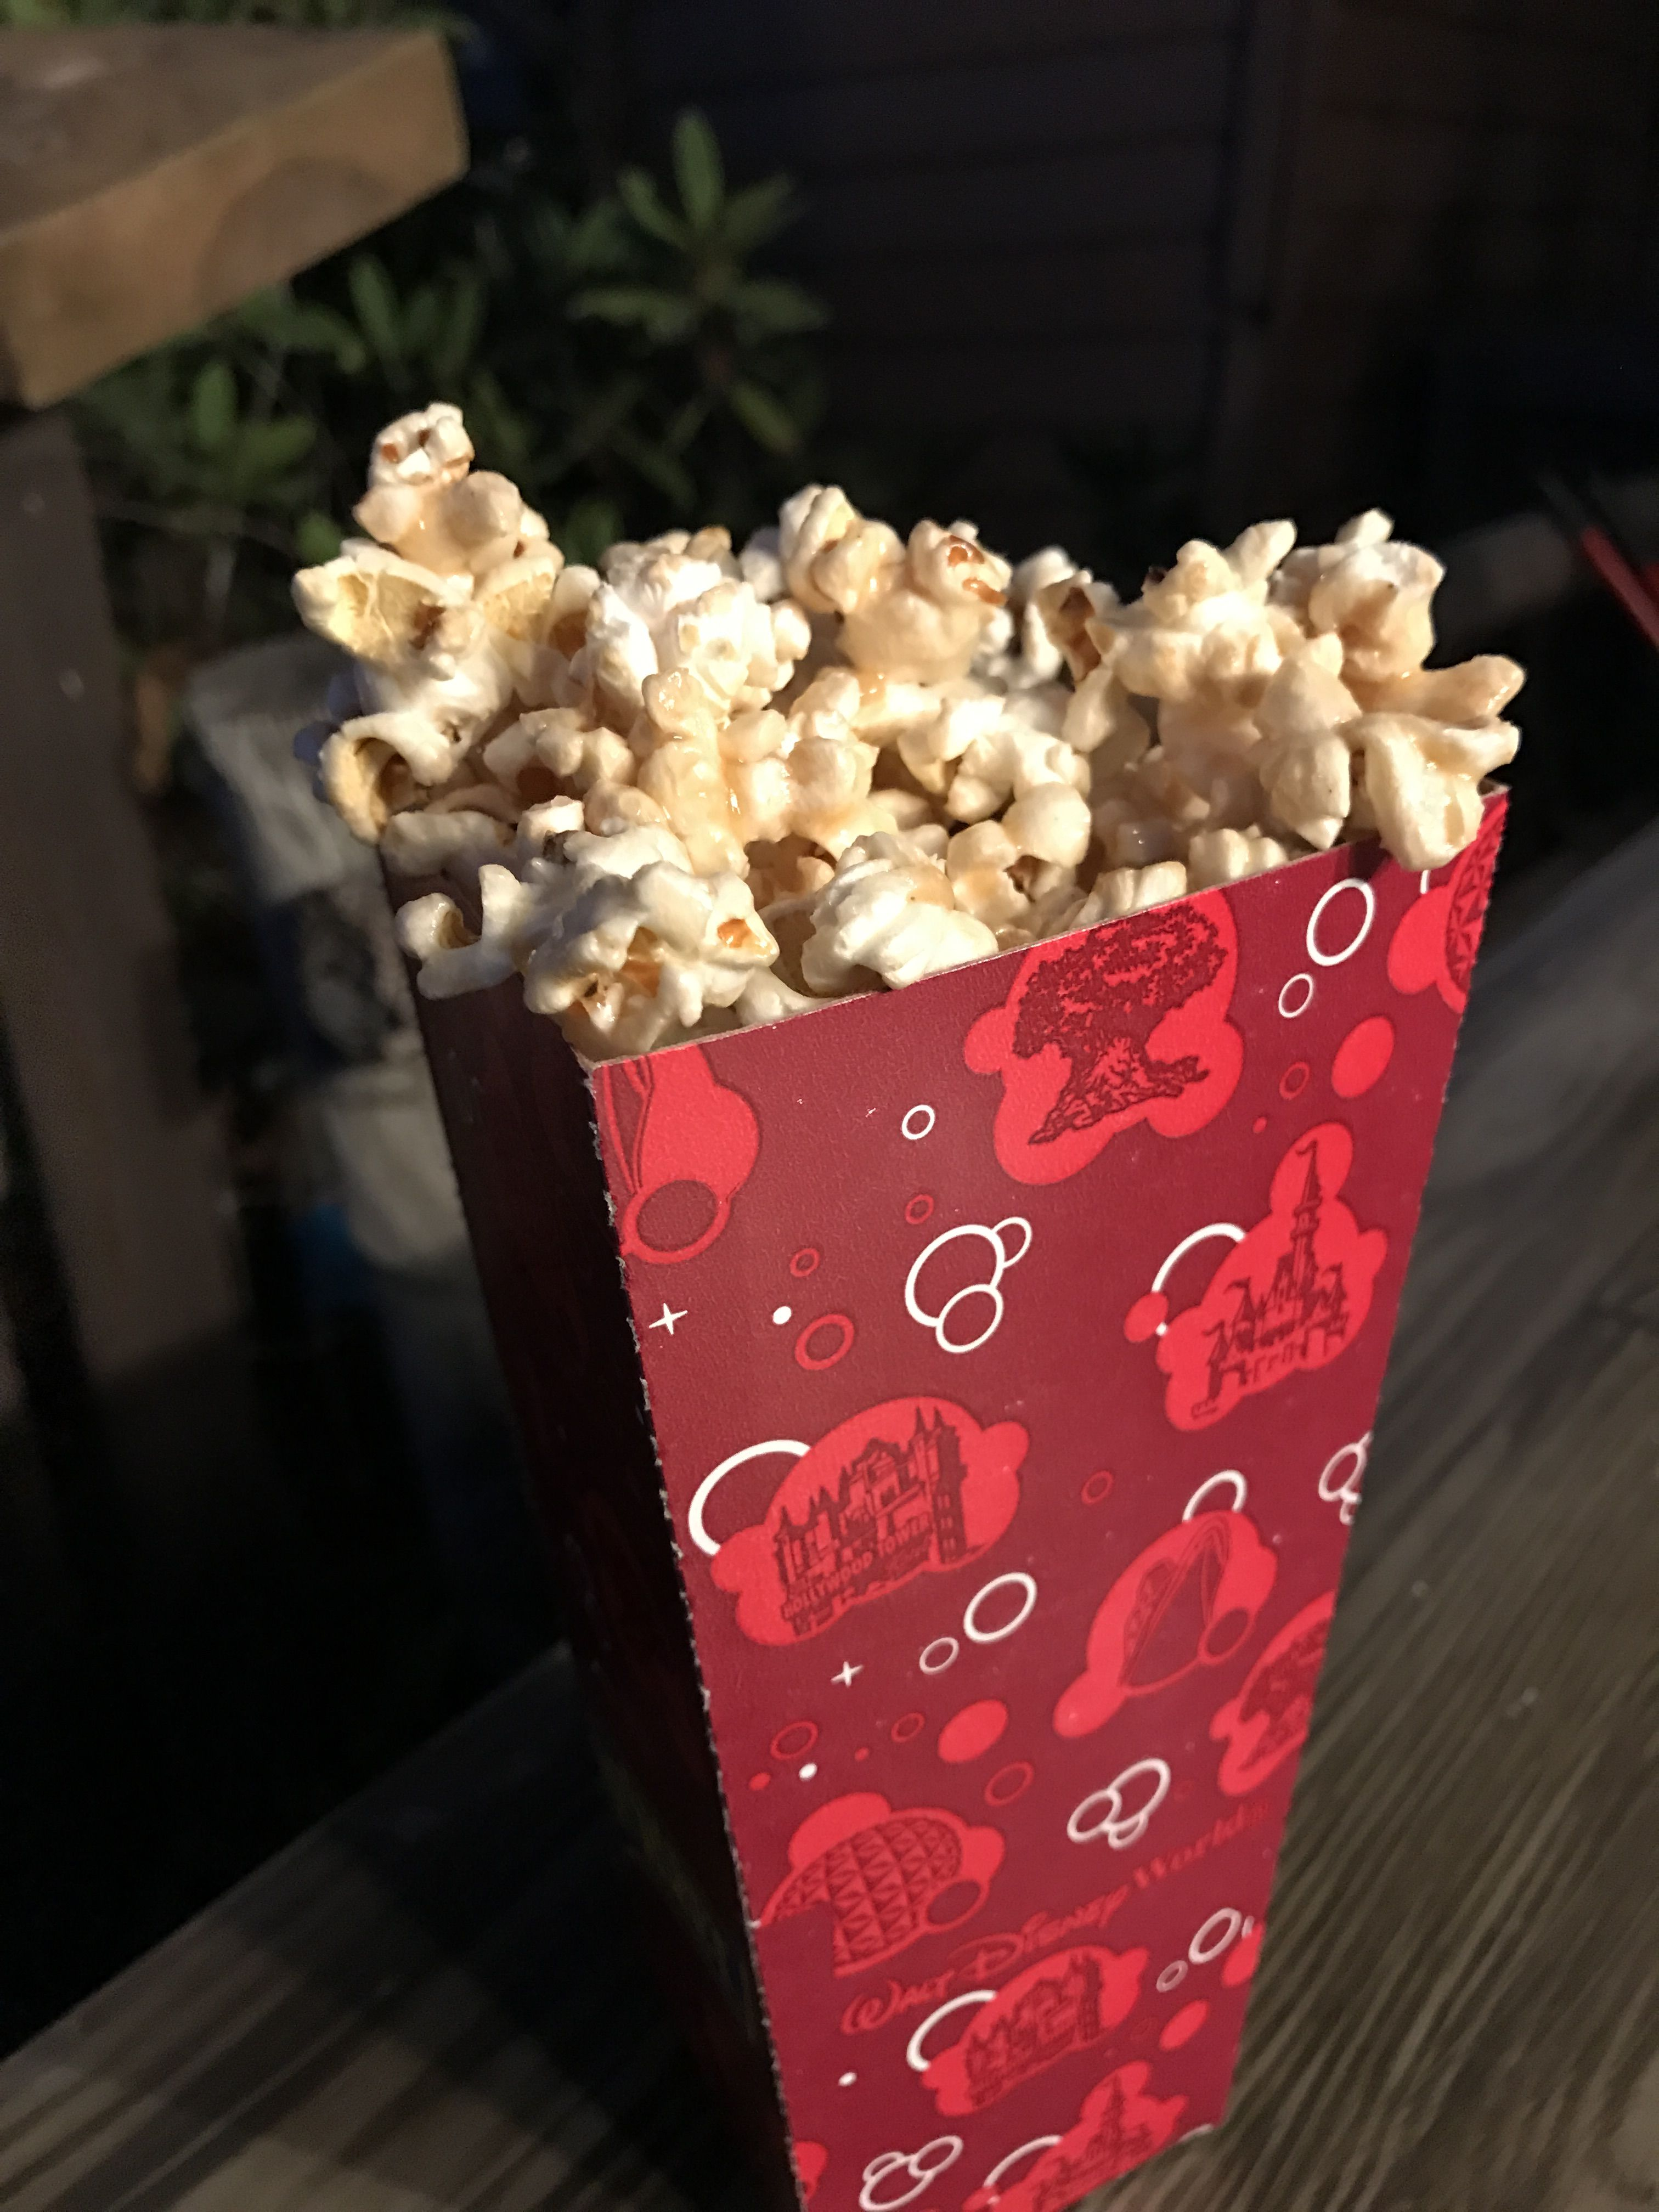 This post contains a review of the maple popcorn at